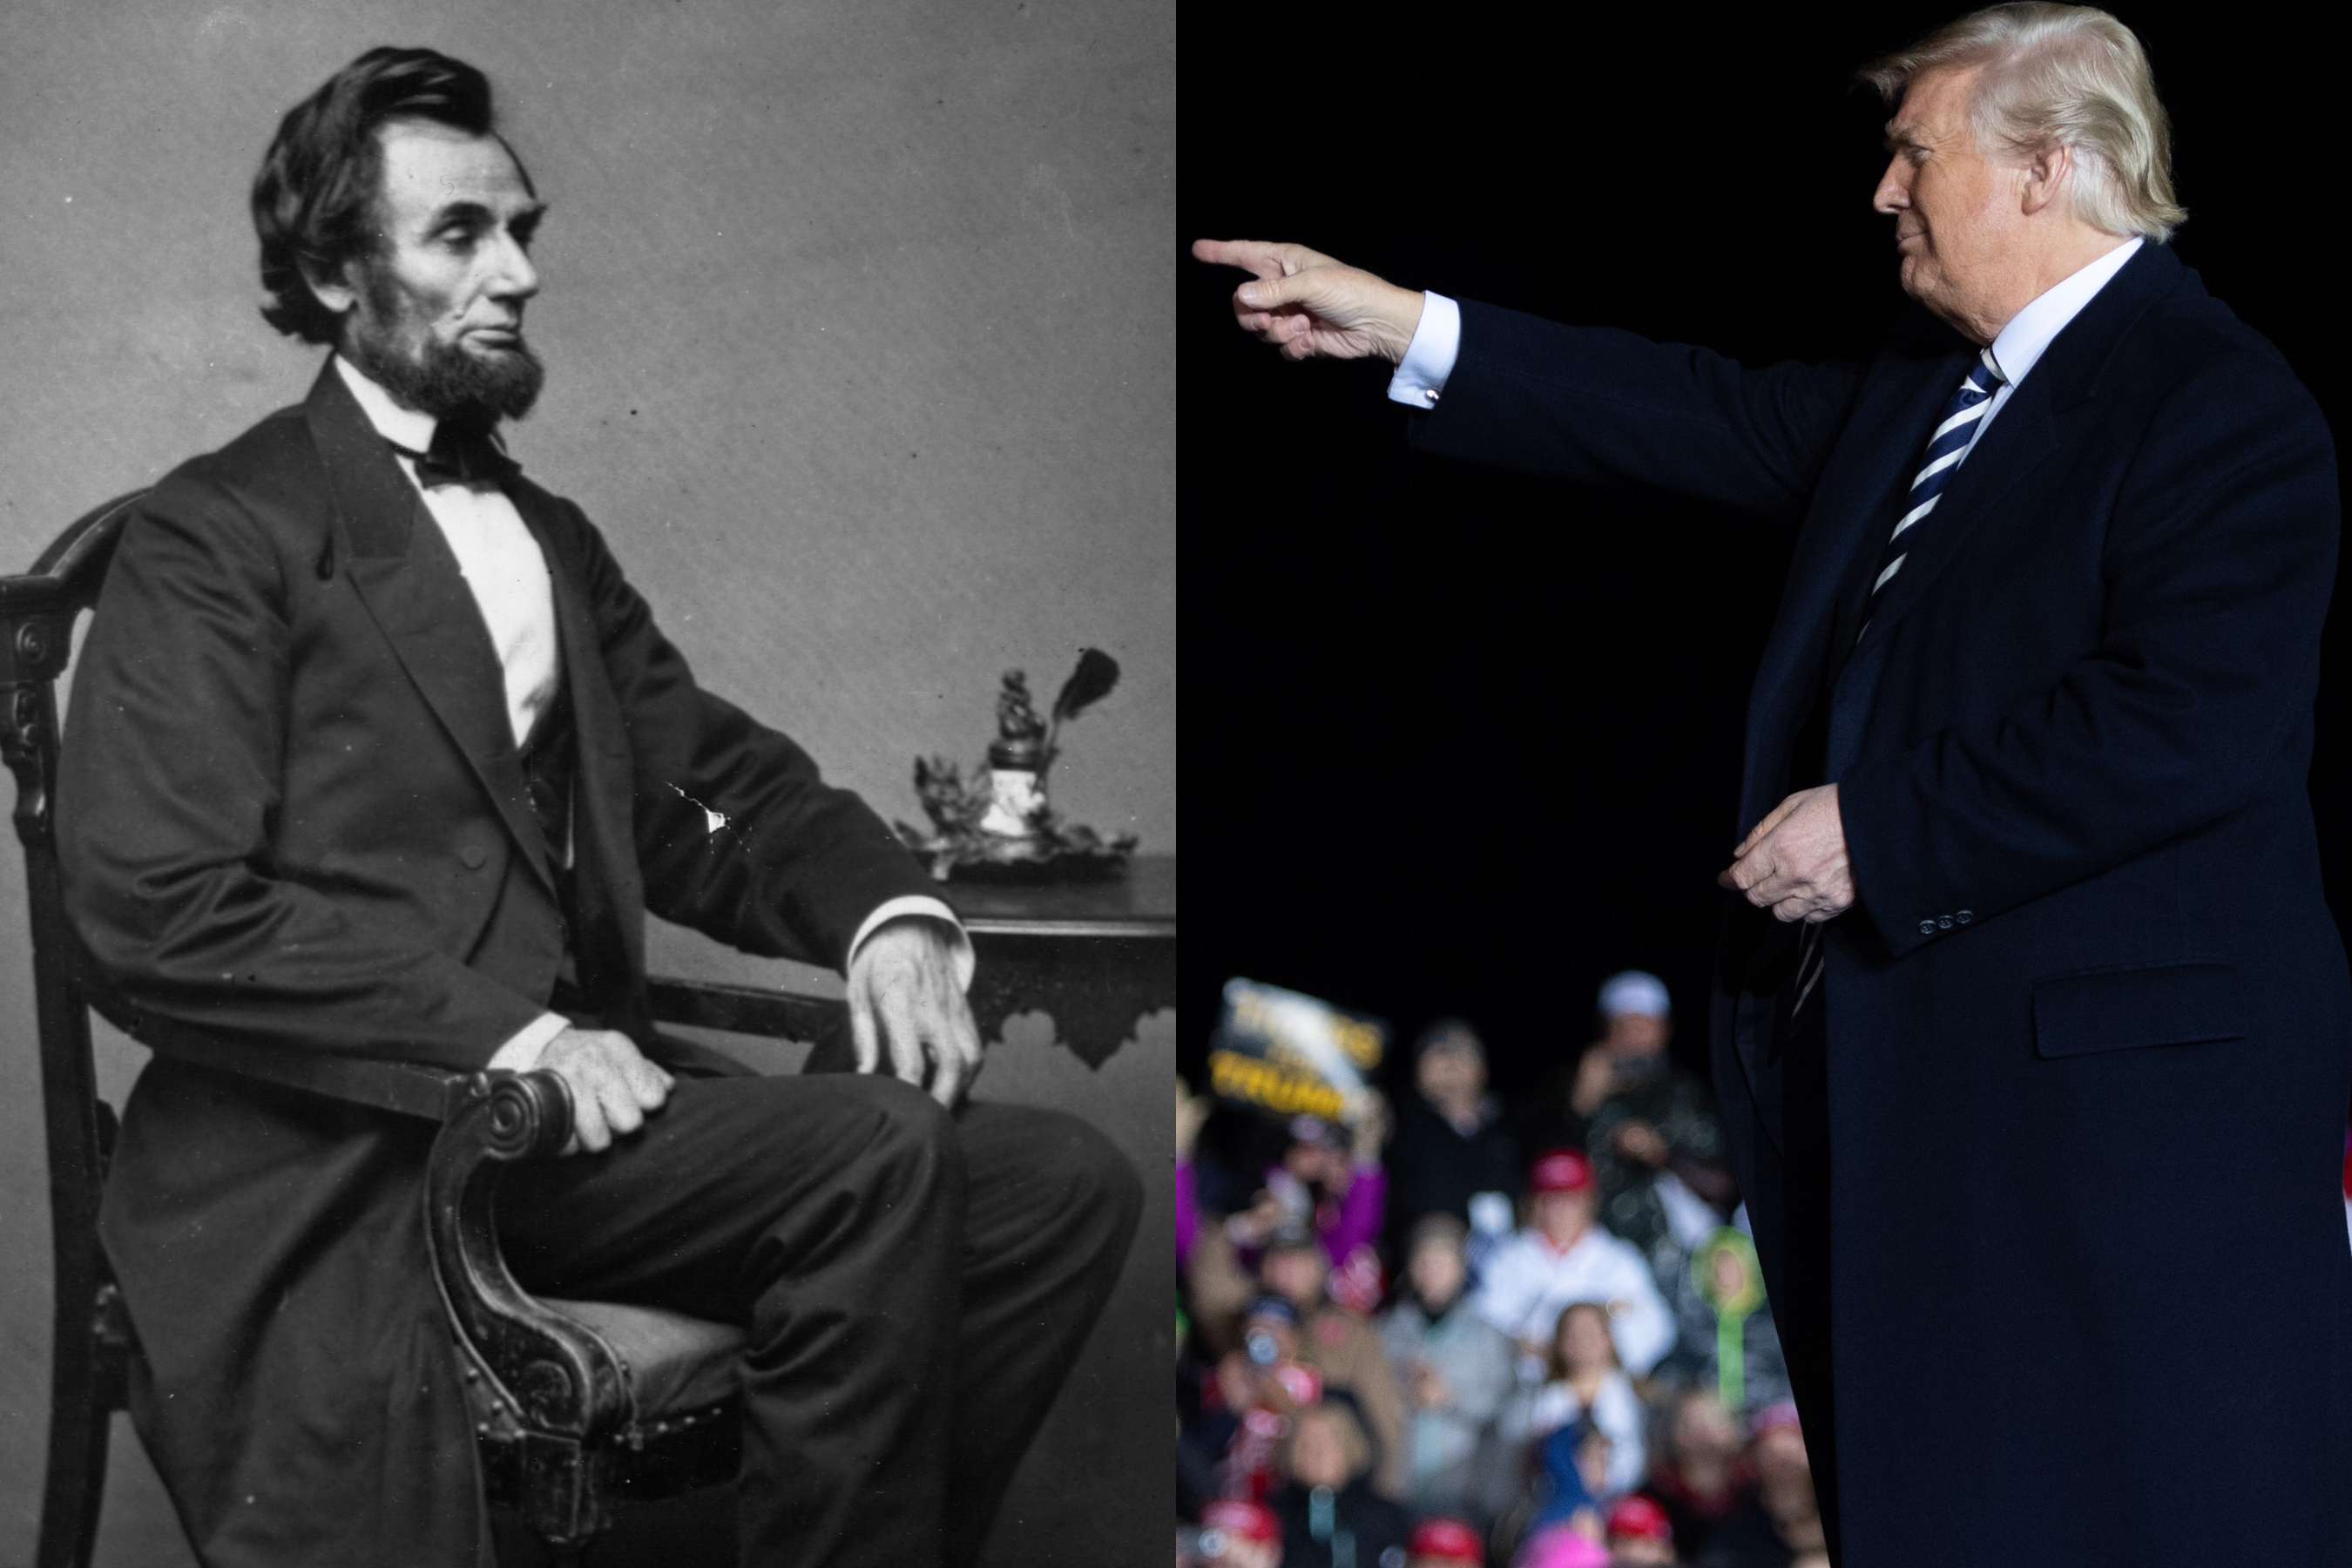 This historian spent 10 years researching wartime presidents. Trump scares him the most.